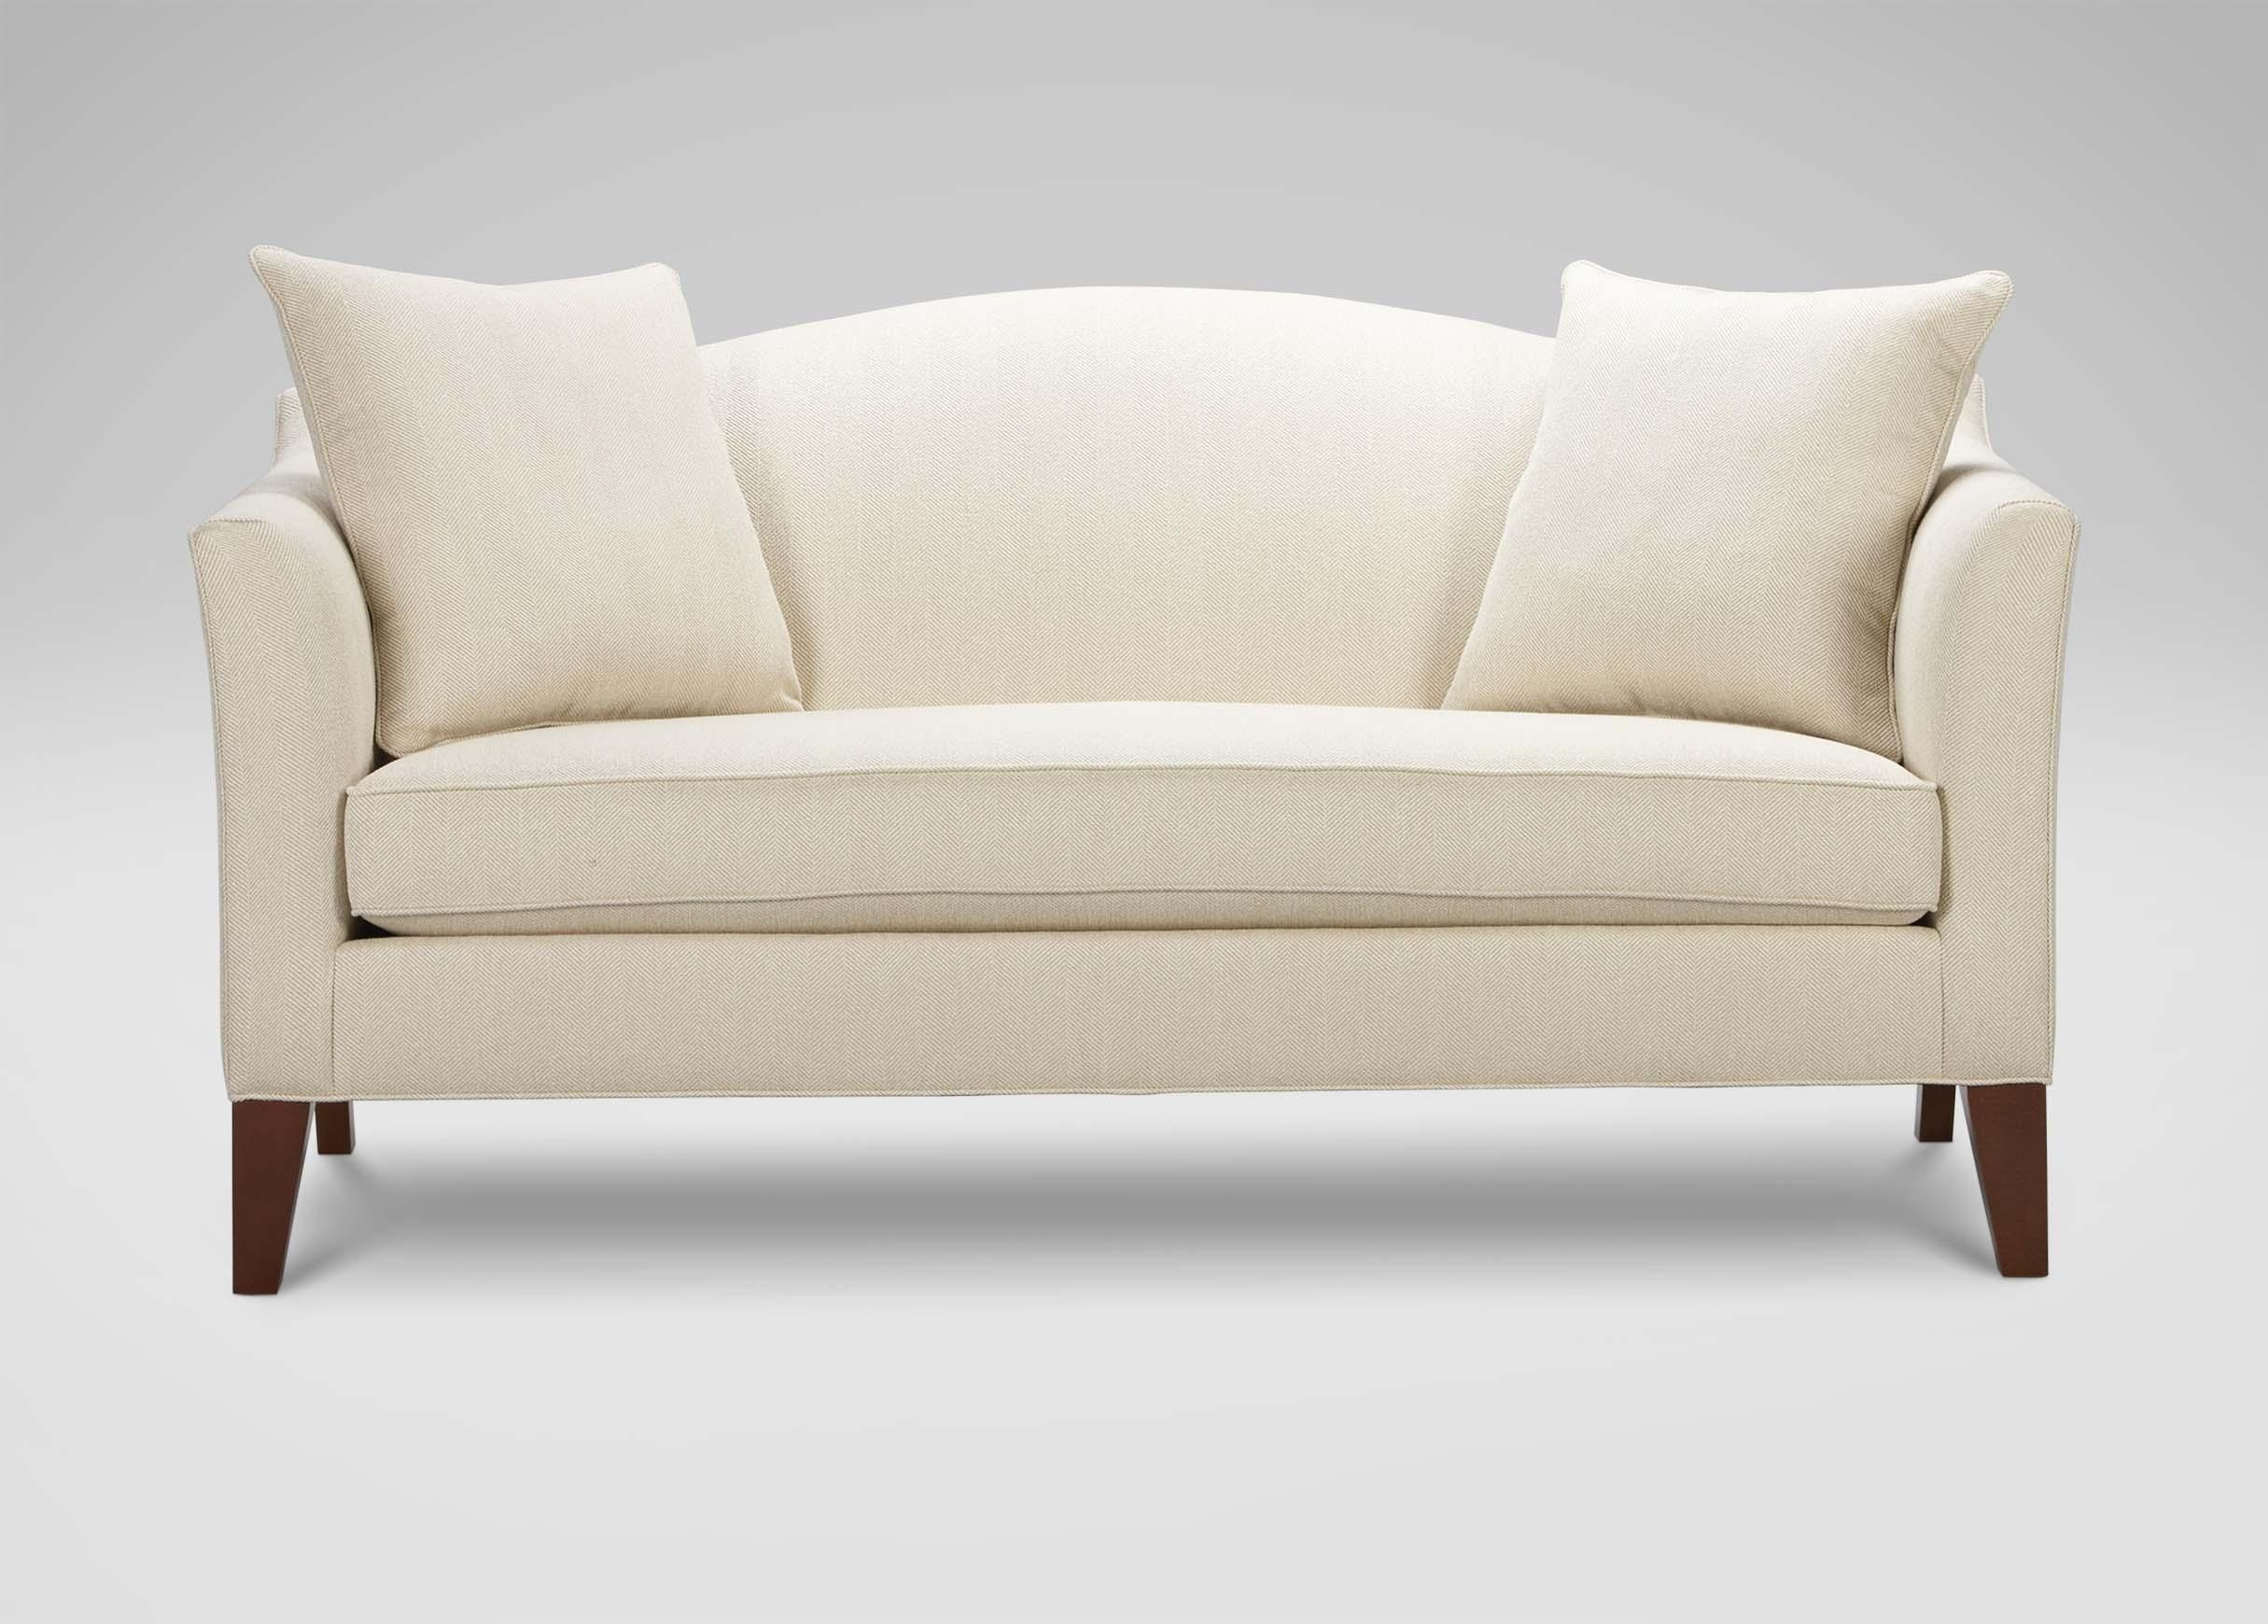 chadwick sofa ethan allen reviews fl 20 best collection of sofas and chairs | ...